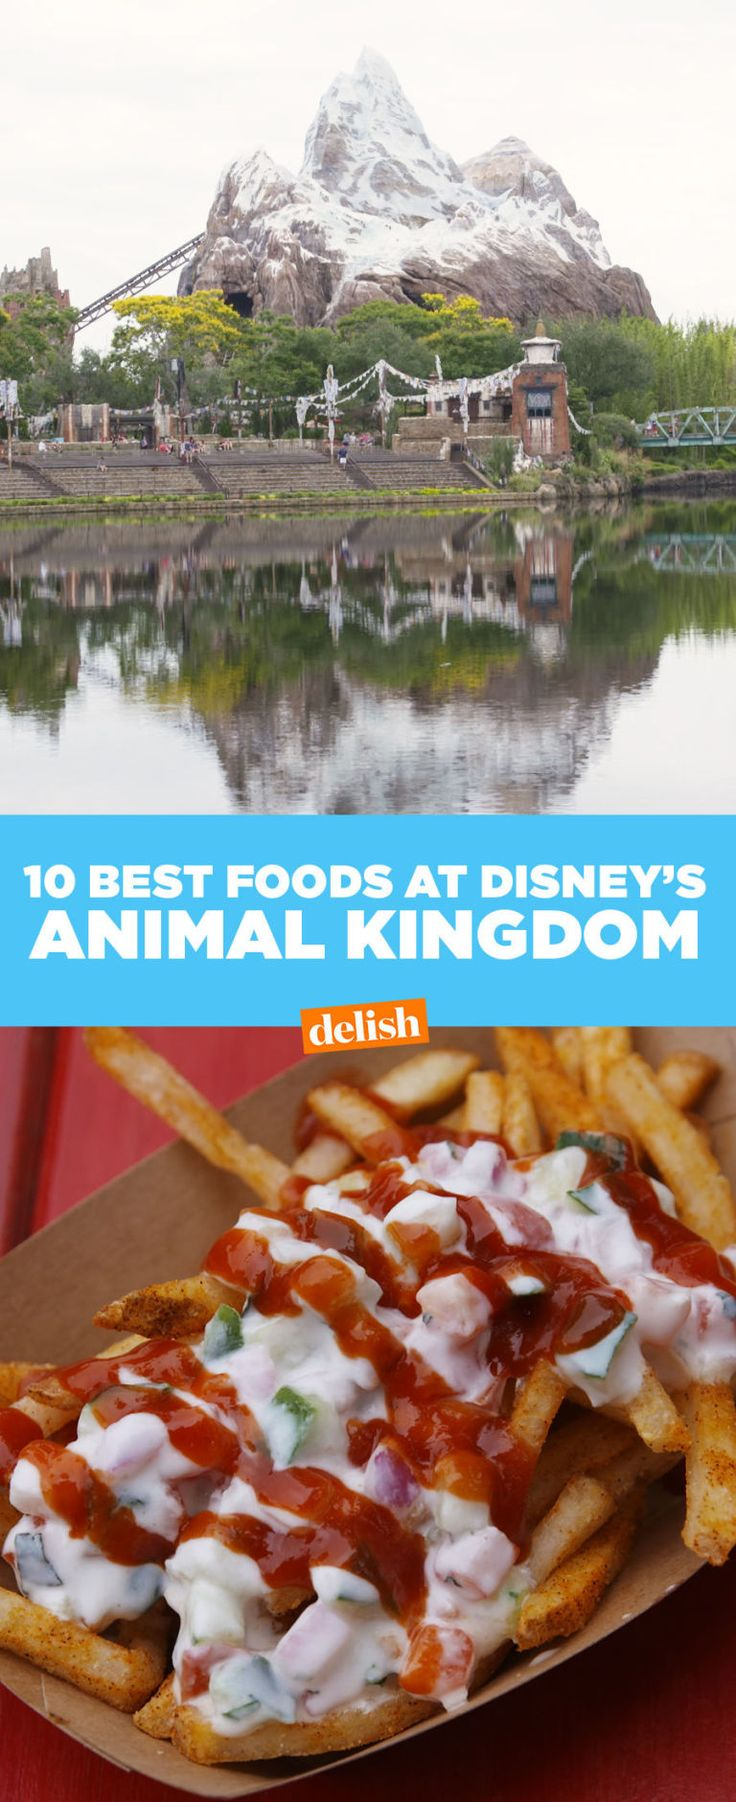 The 15 Most Delish Foods At Disney's Animal Kingdom